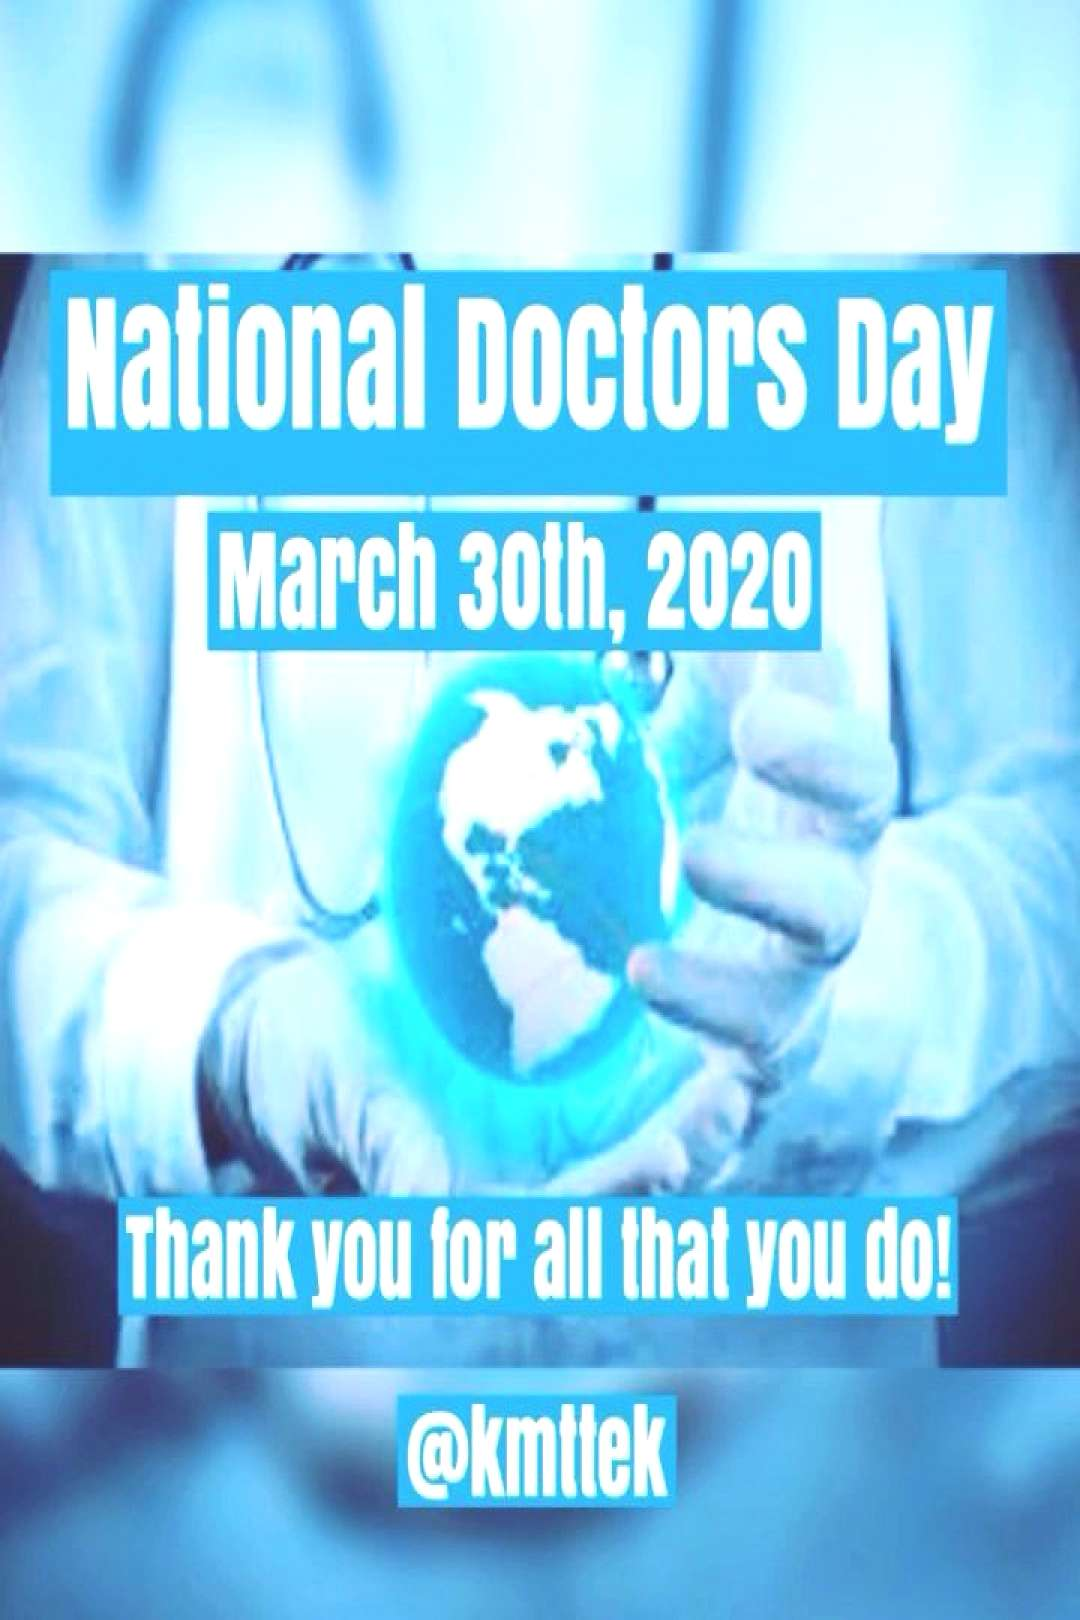 National Doctors Day Thanks Happy - National Doctors Day Thanks national doctors day thanks happy *